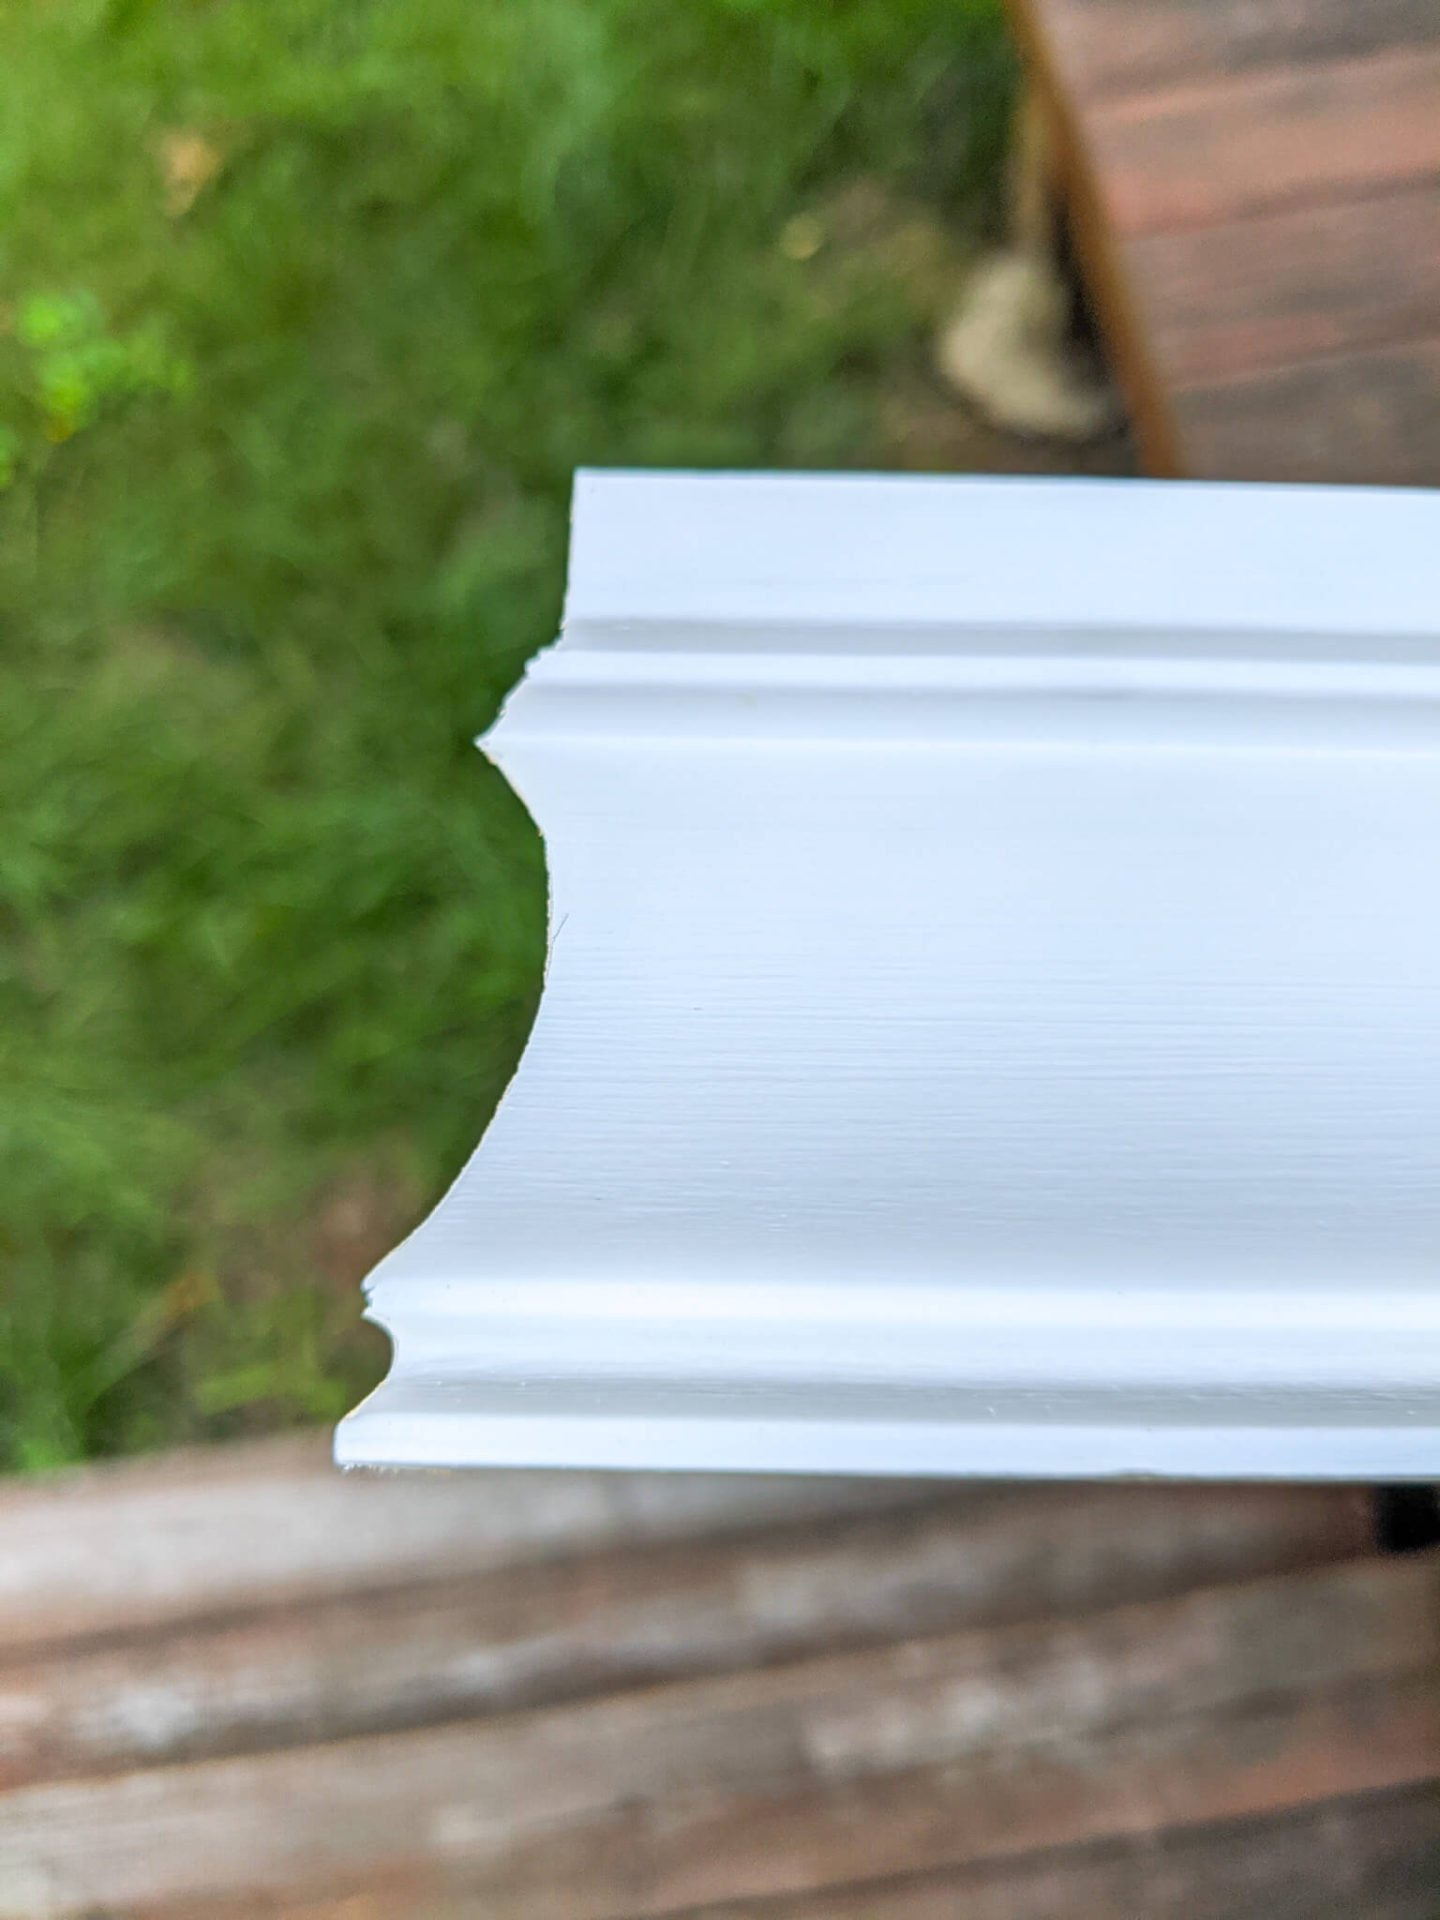 Wall molding after a coping cut was made